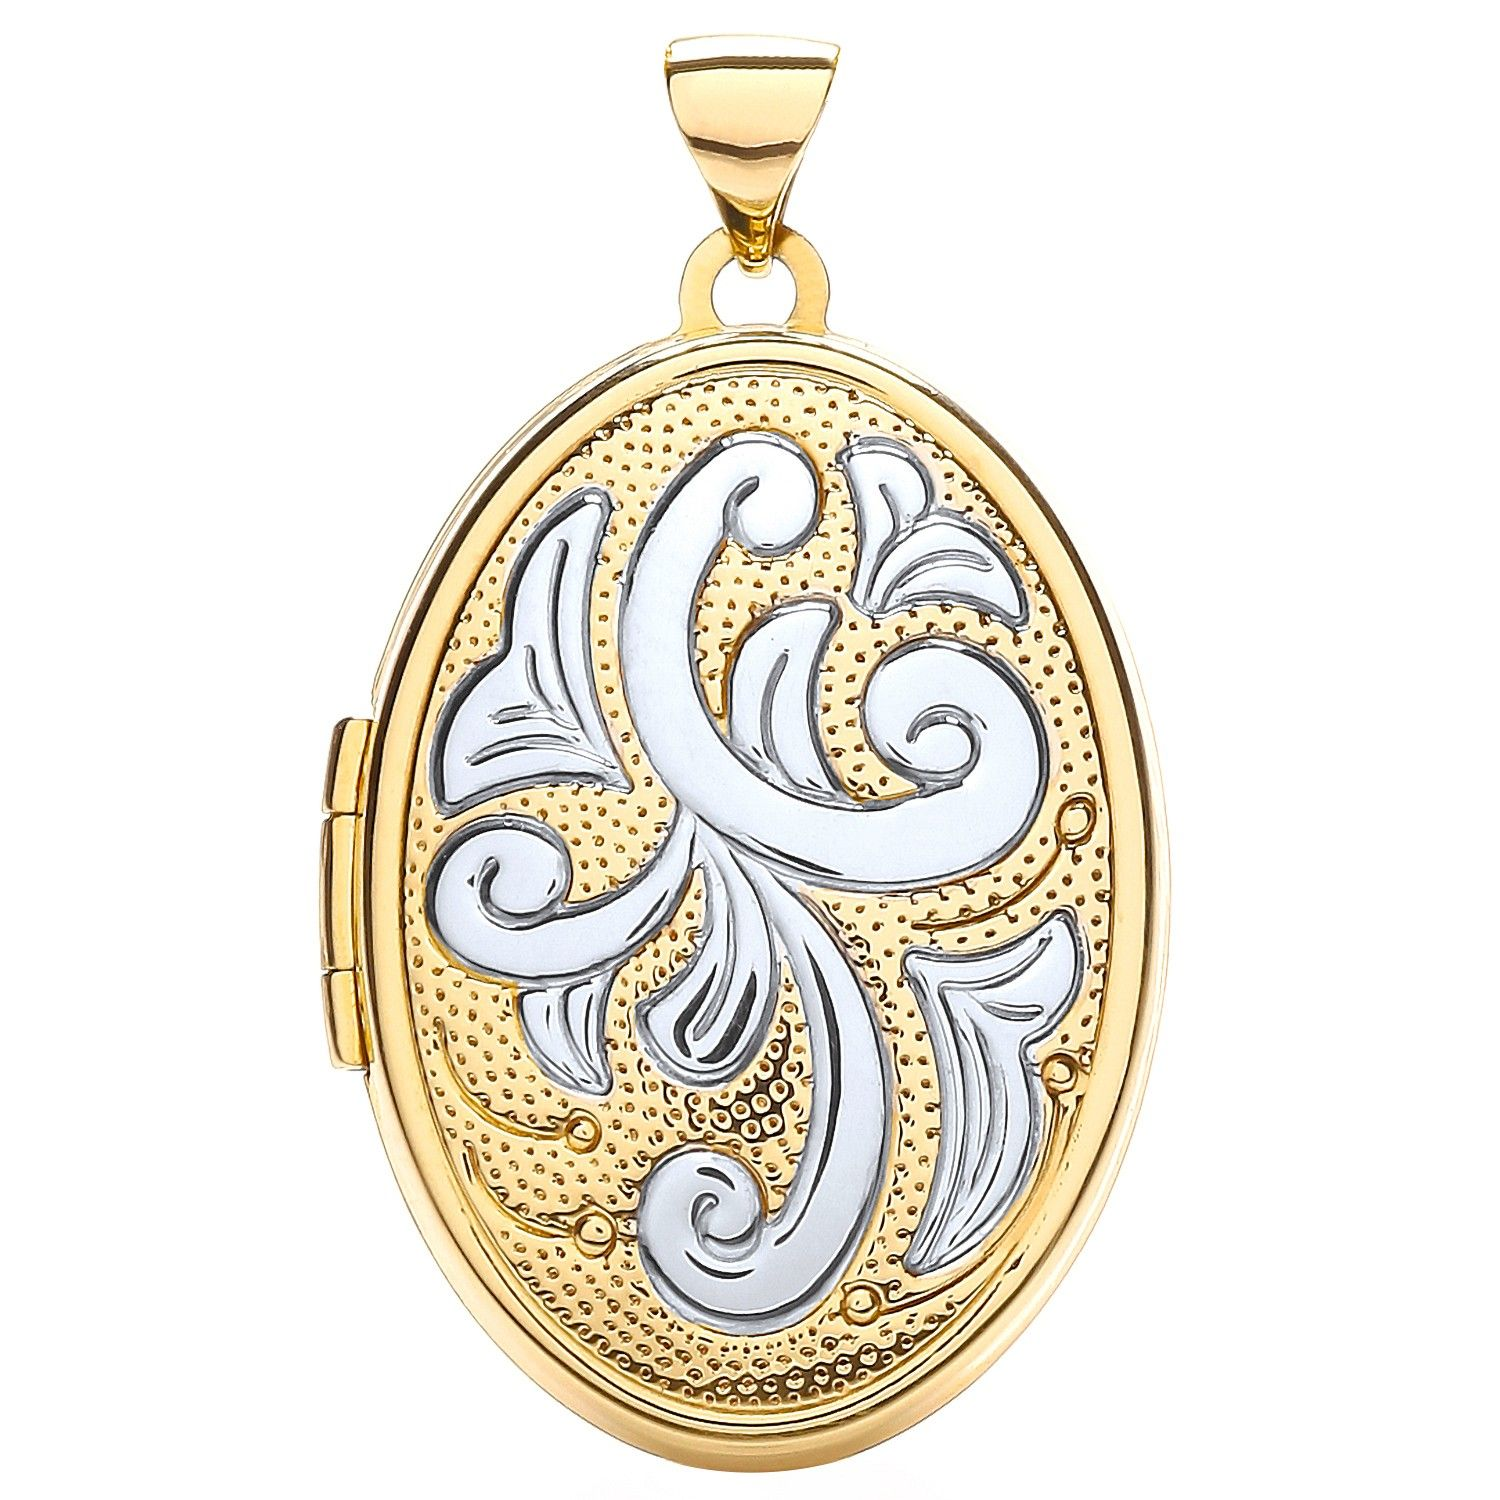 9ct Yellow and White Gold Oval Shaped Family Locket Gold